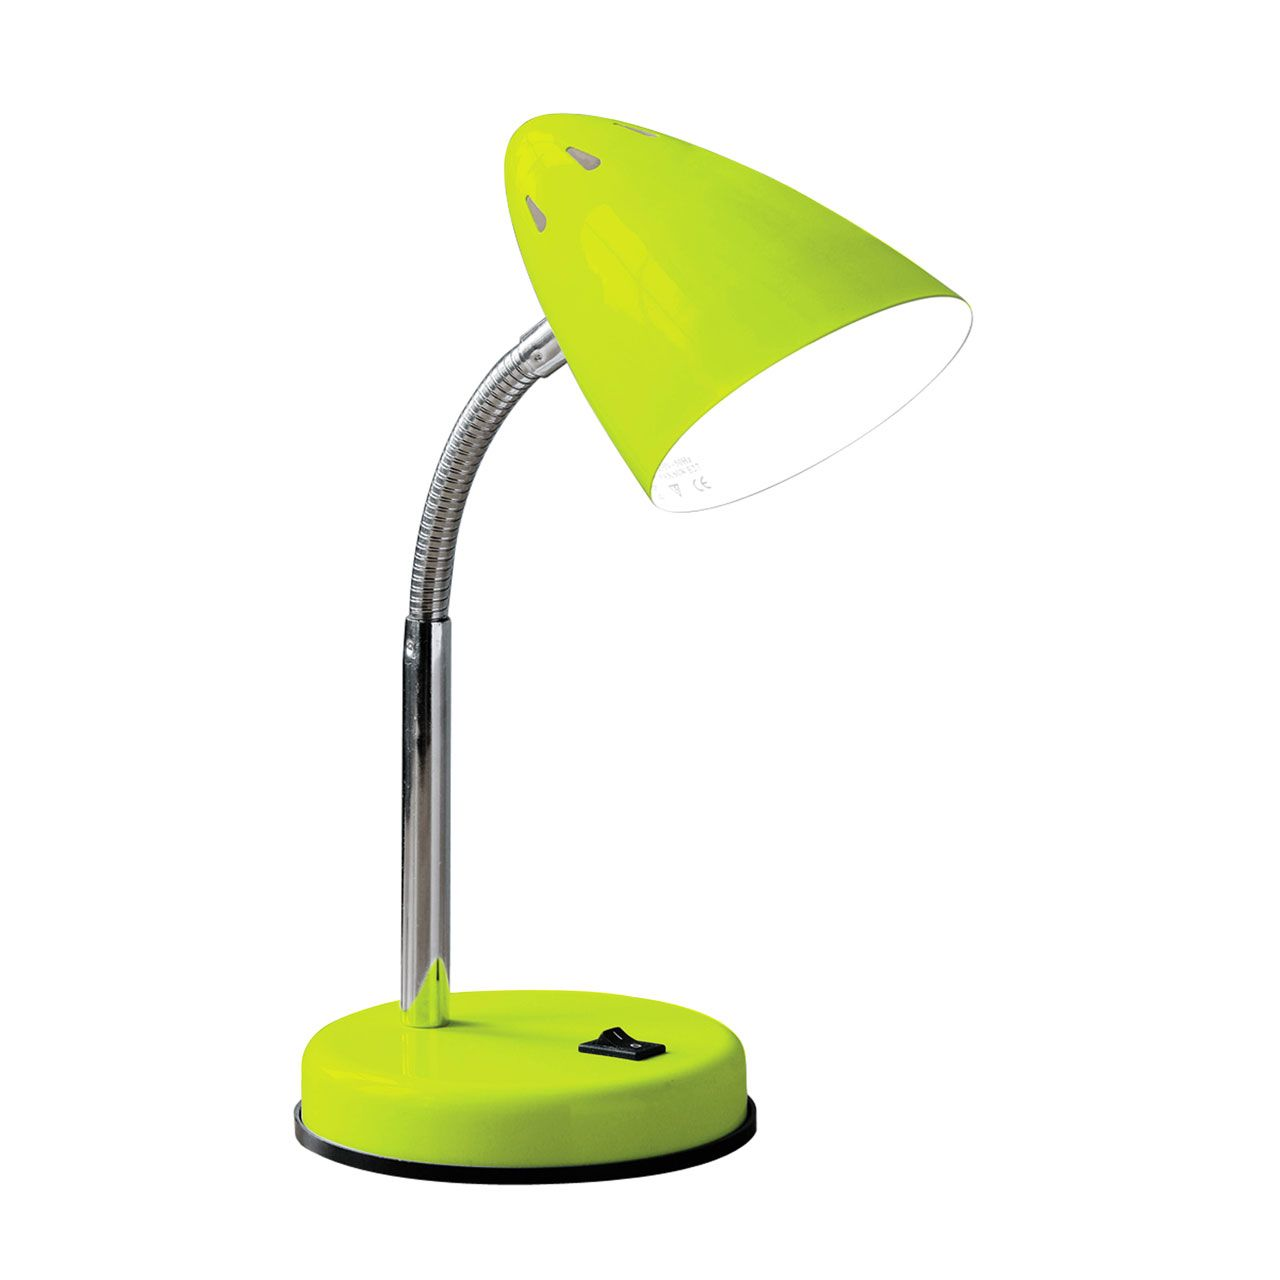 Premier Housewares Lime Green Desk Lamp 2501184 Brighten Up Your Home With The Collection Of Homewares And Cookware